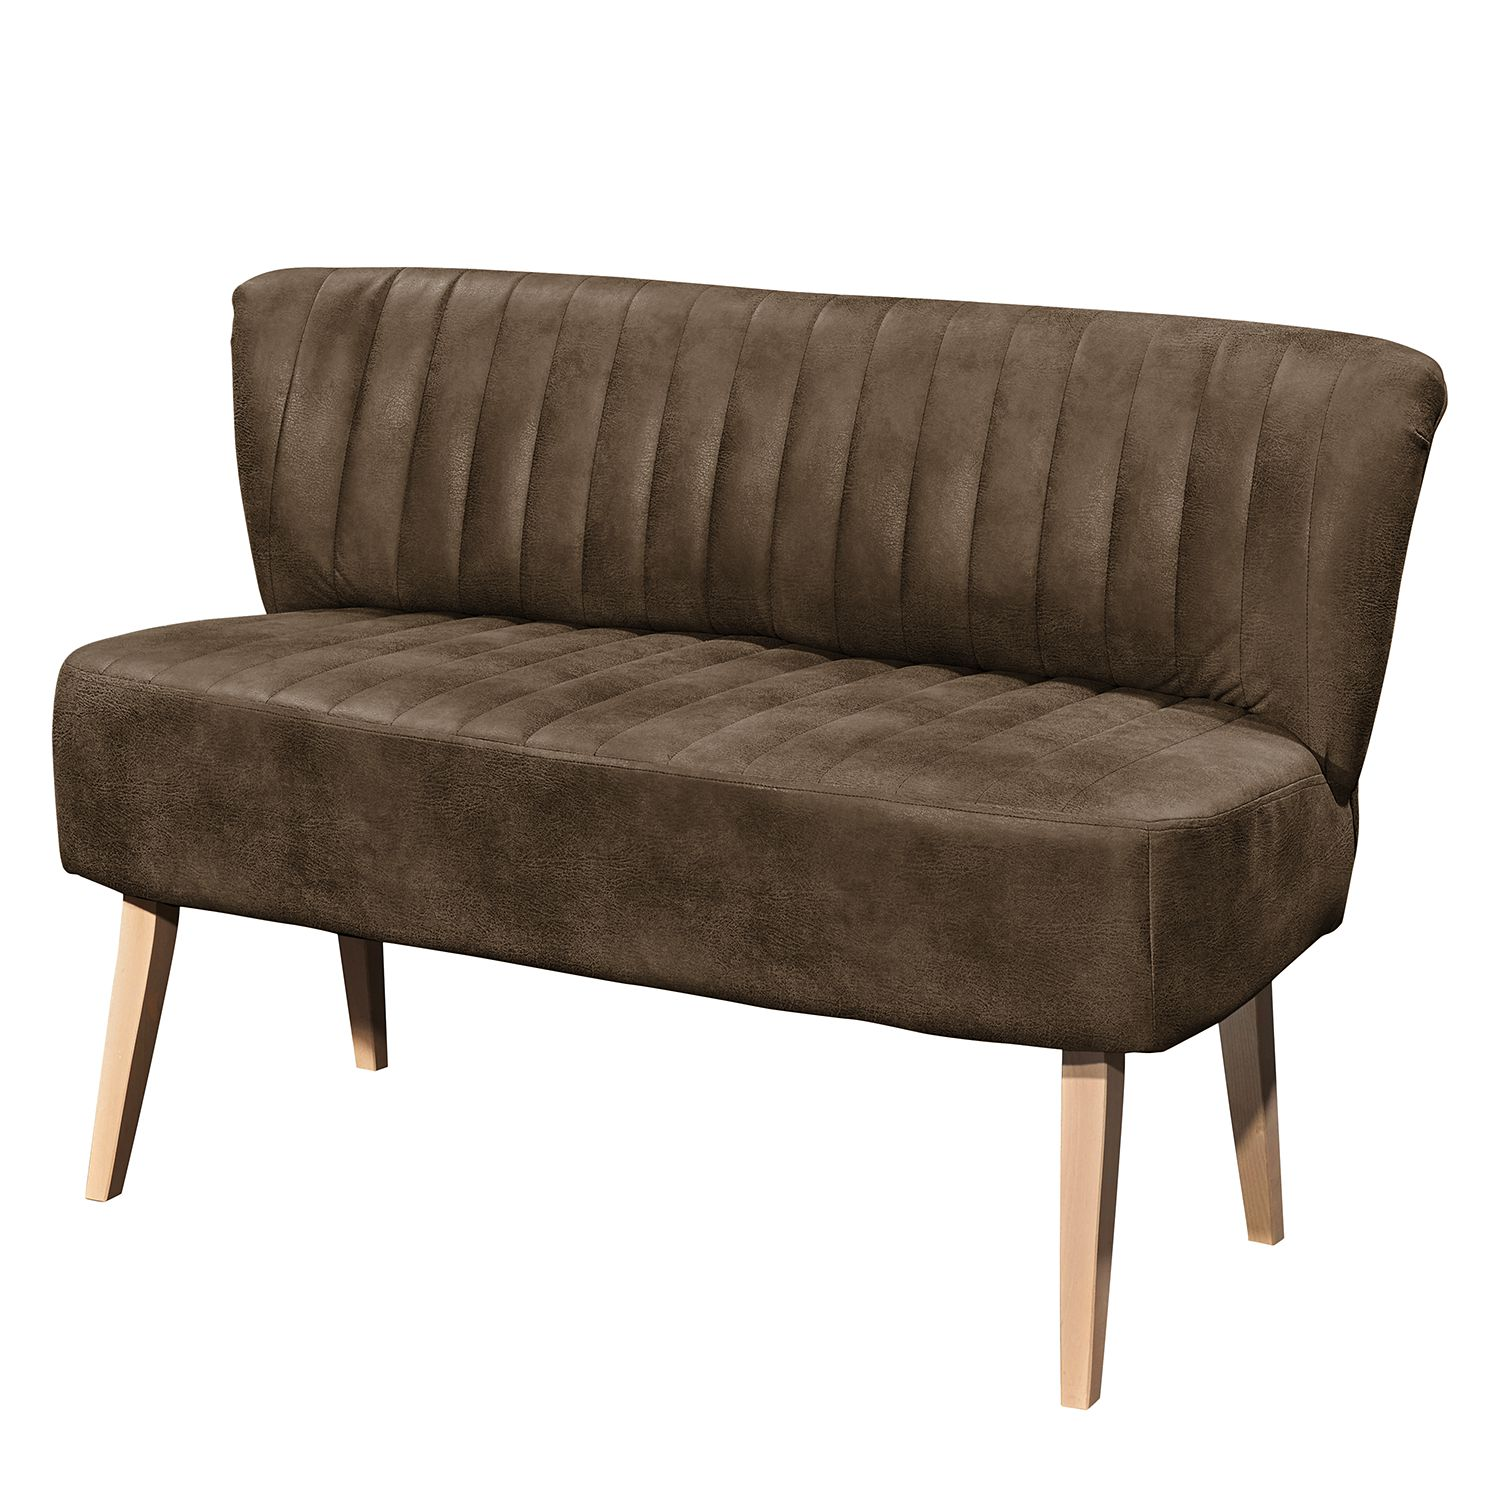 Sofa Rotnes (2-Sitzer) - Antiklederlook - Buche Natur - Havanna, mooved